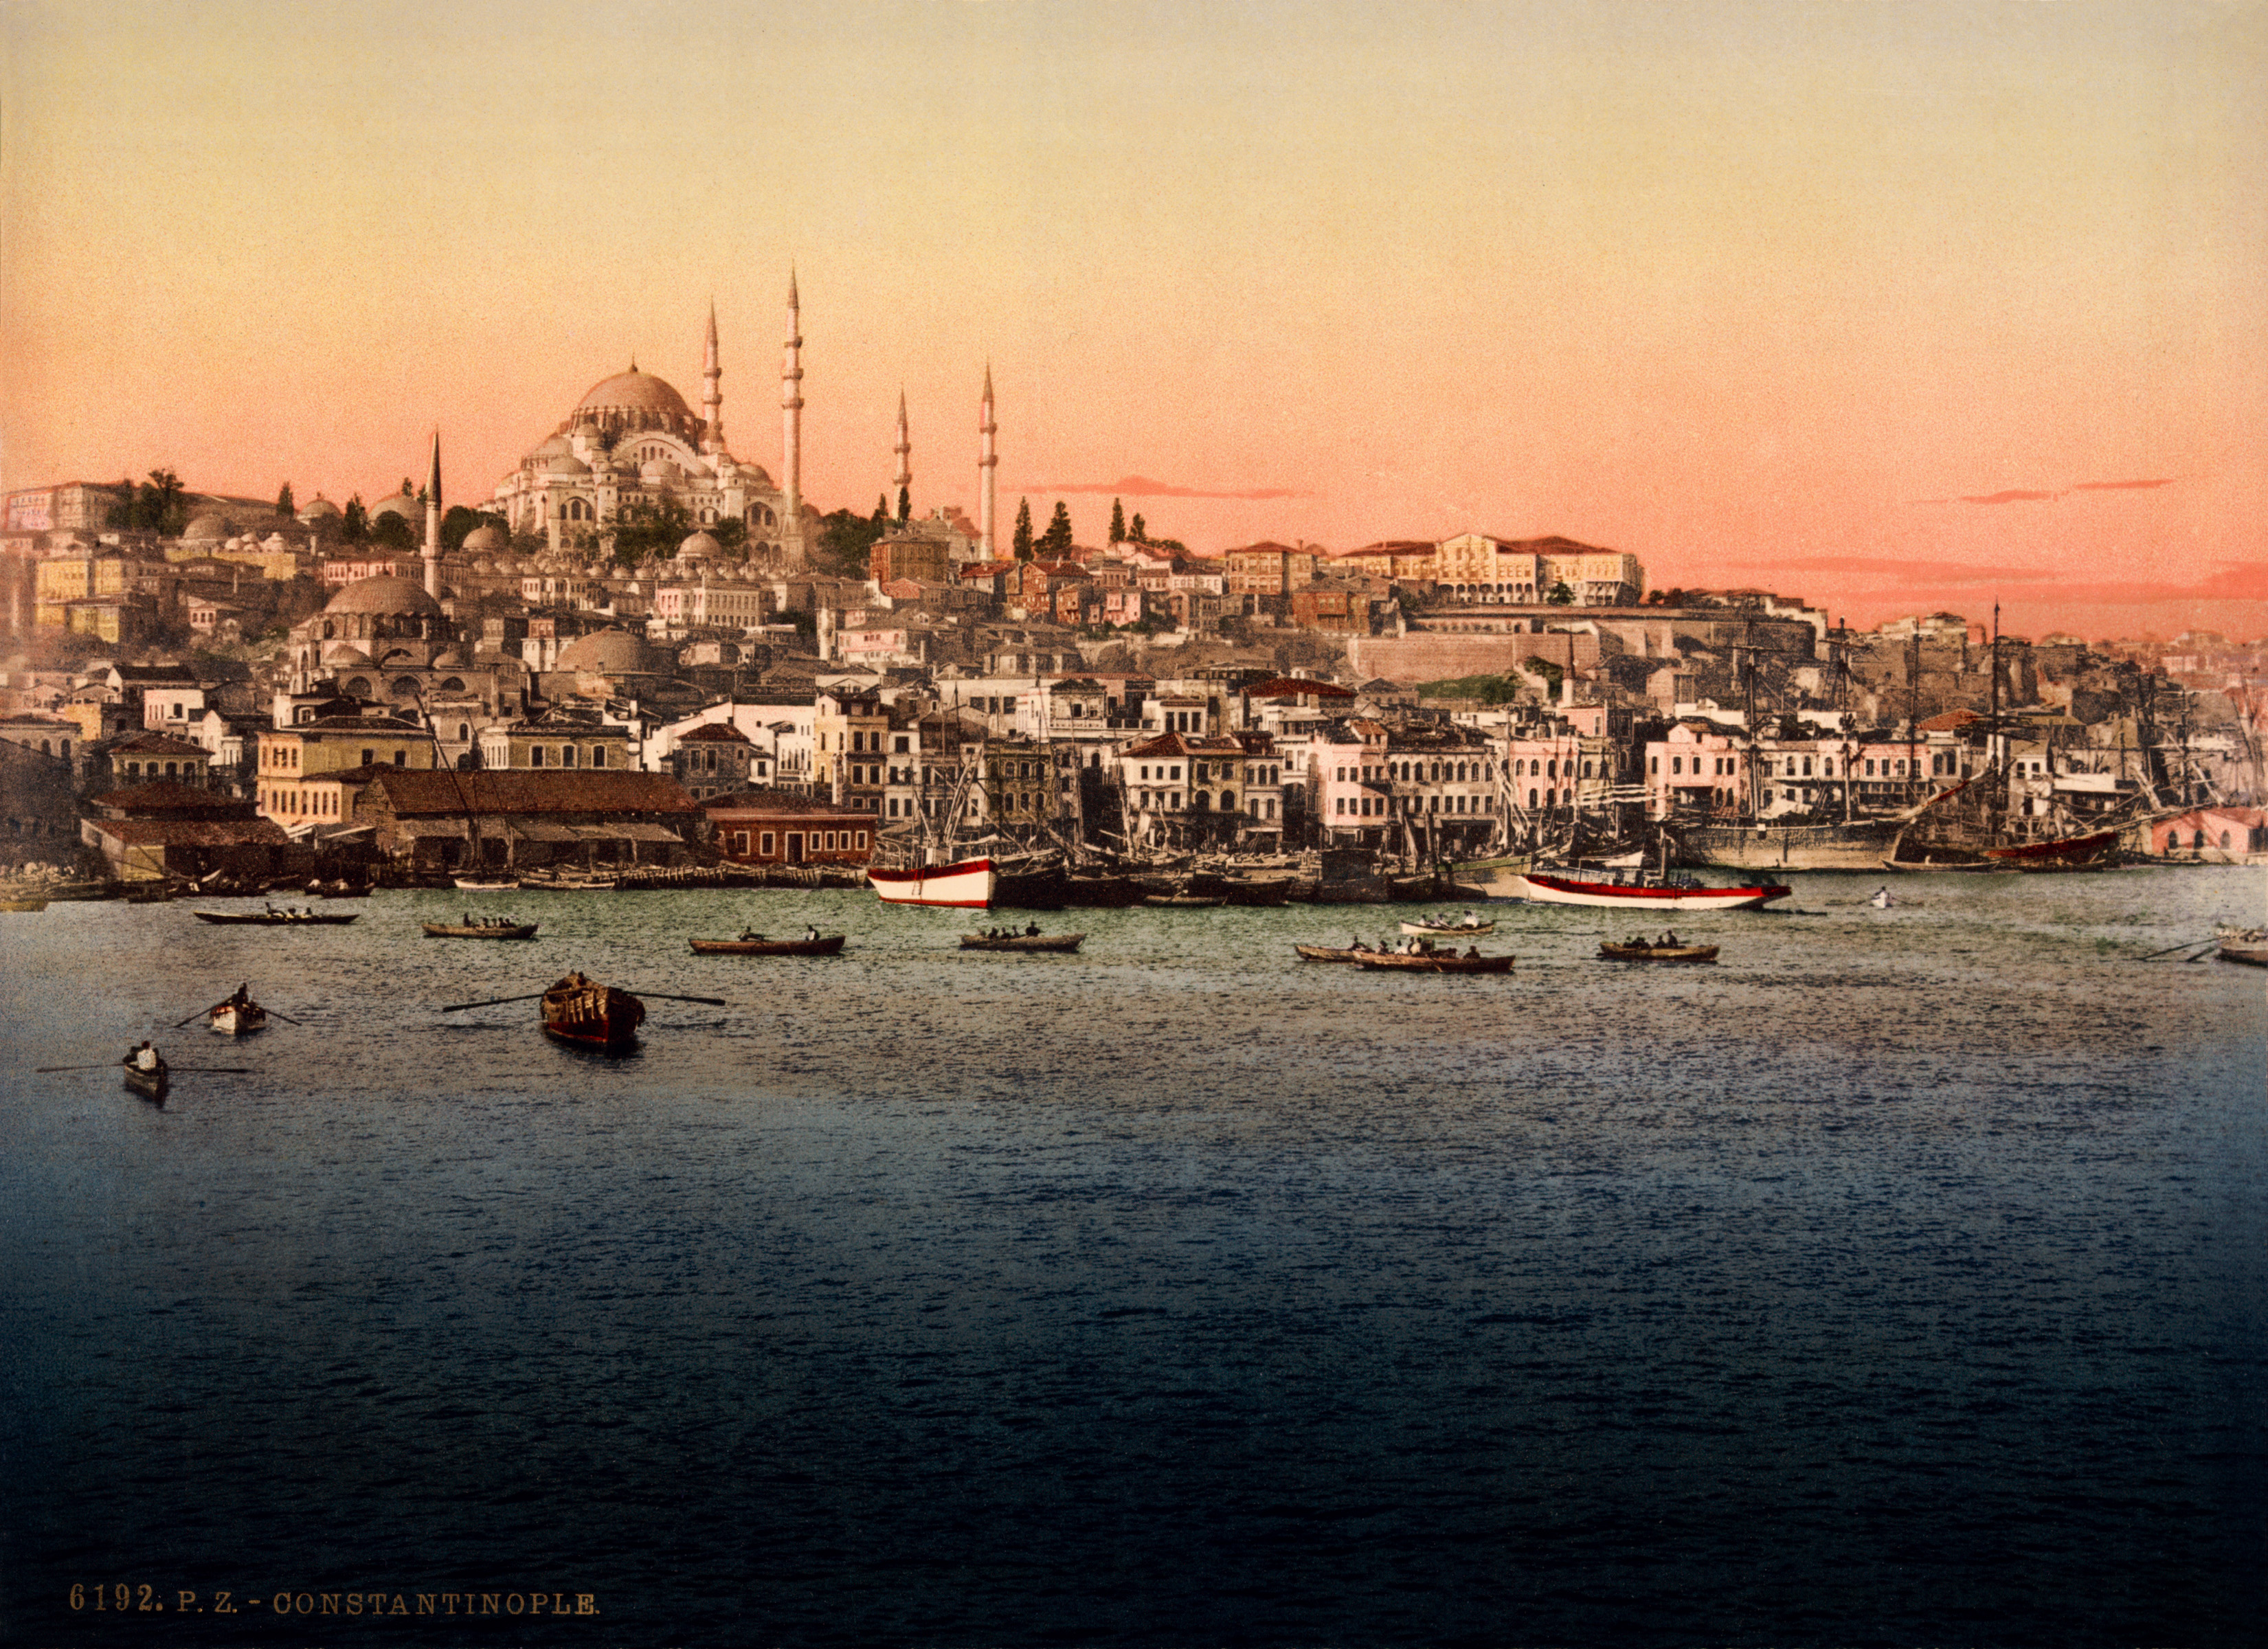 constantinople and ottoman empire The fall of constantinople (greek: ἅλωσις τῆς  between 1919 and 1922, greek politician eleftherios venizelos attempted to implement the megali idea (recapture of constantinople from the ottoman empire) in the greco-turkish war (1919–1922).